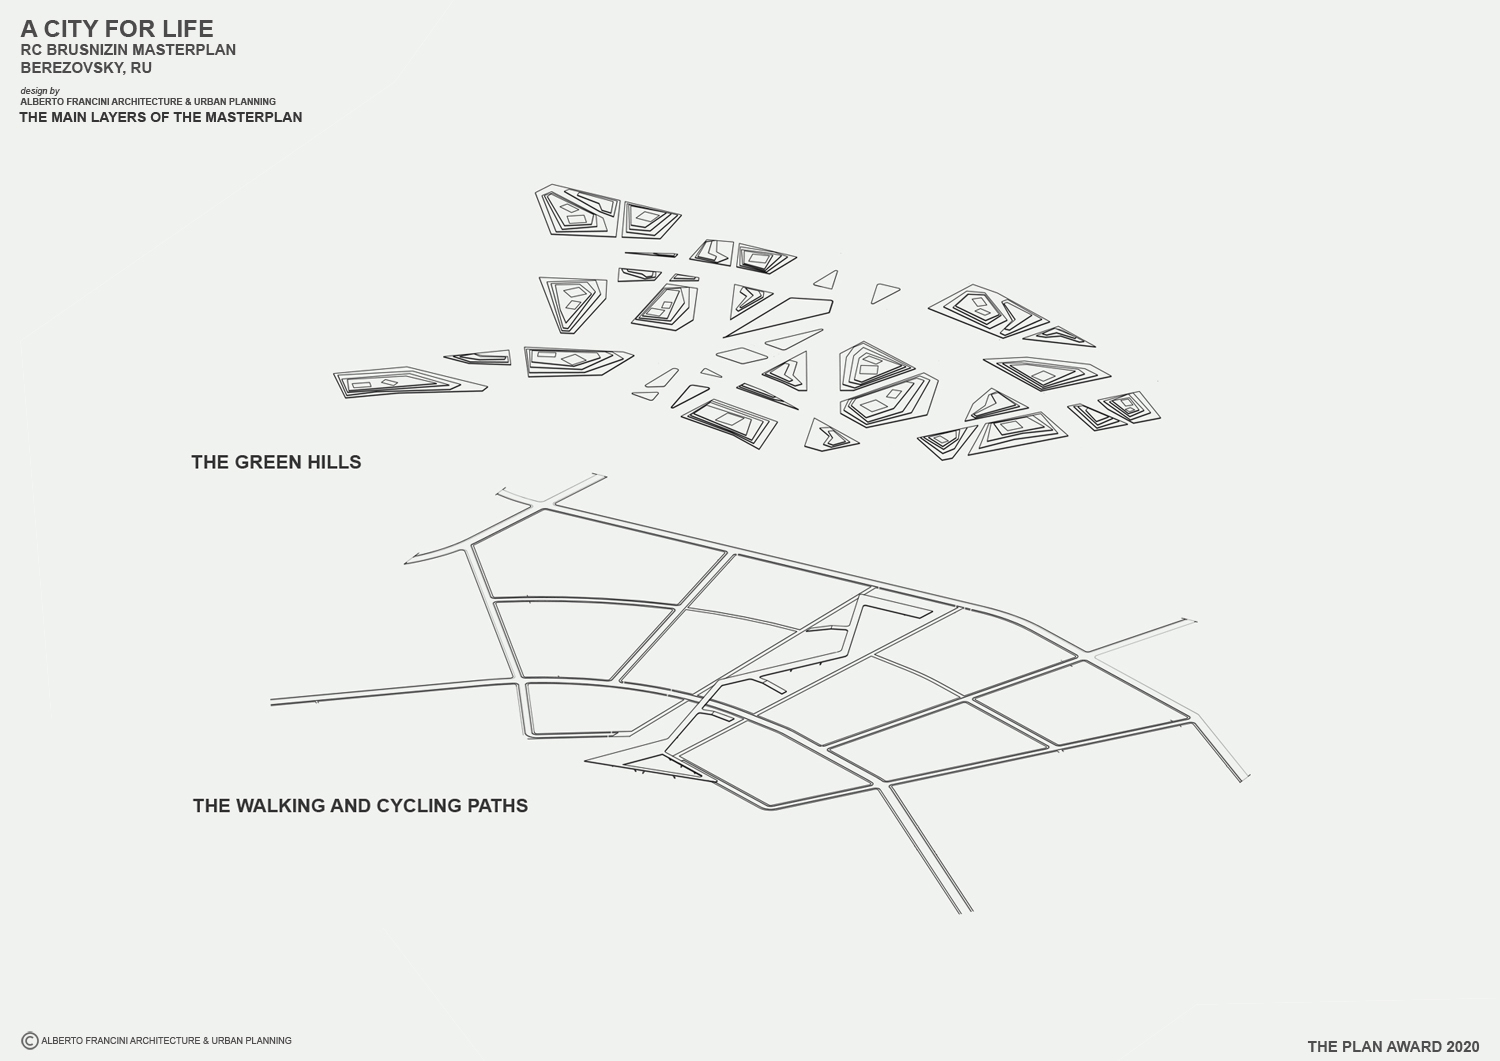 THE MAIN LAYER OF THE MASTERPLAN 2 ALBERTO FRANCINI ARCHITECTURE & URBANPLANNING}